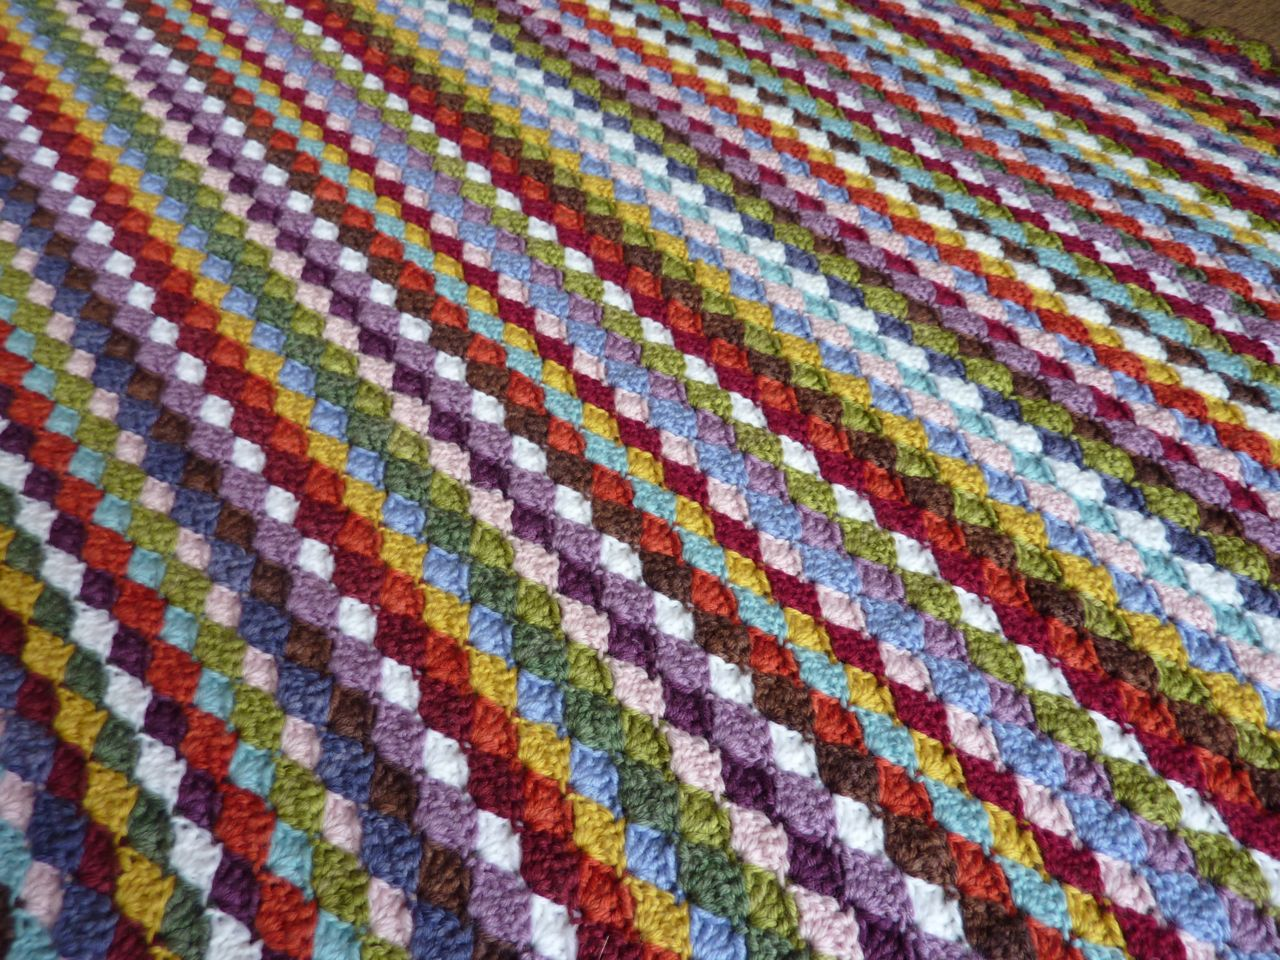 Crochet Patterns Afghan Blanket : Crochet blanket - Voila!